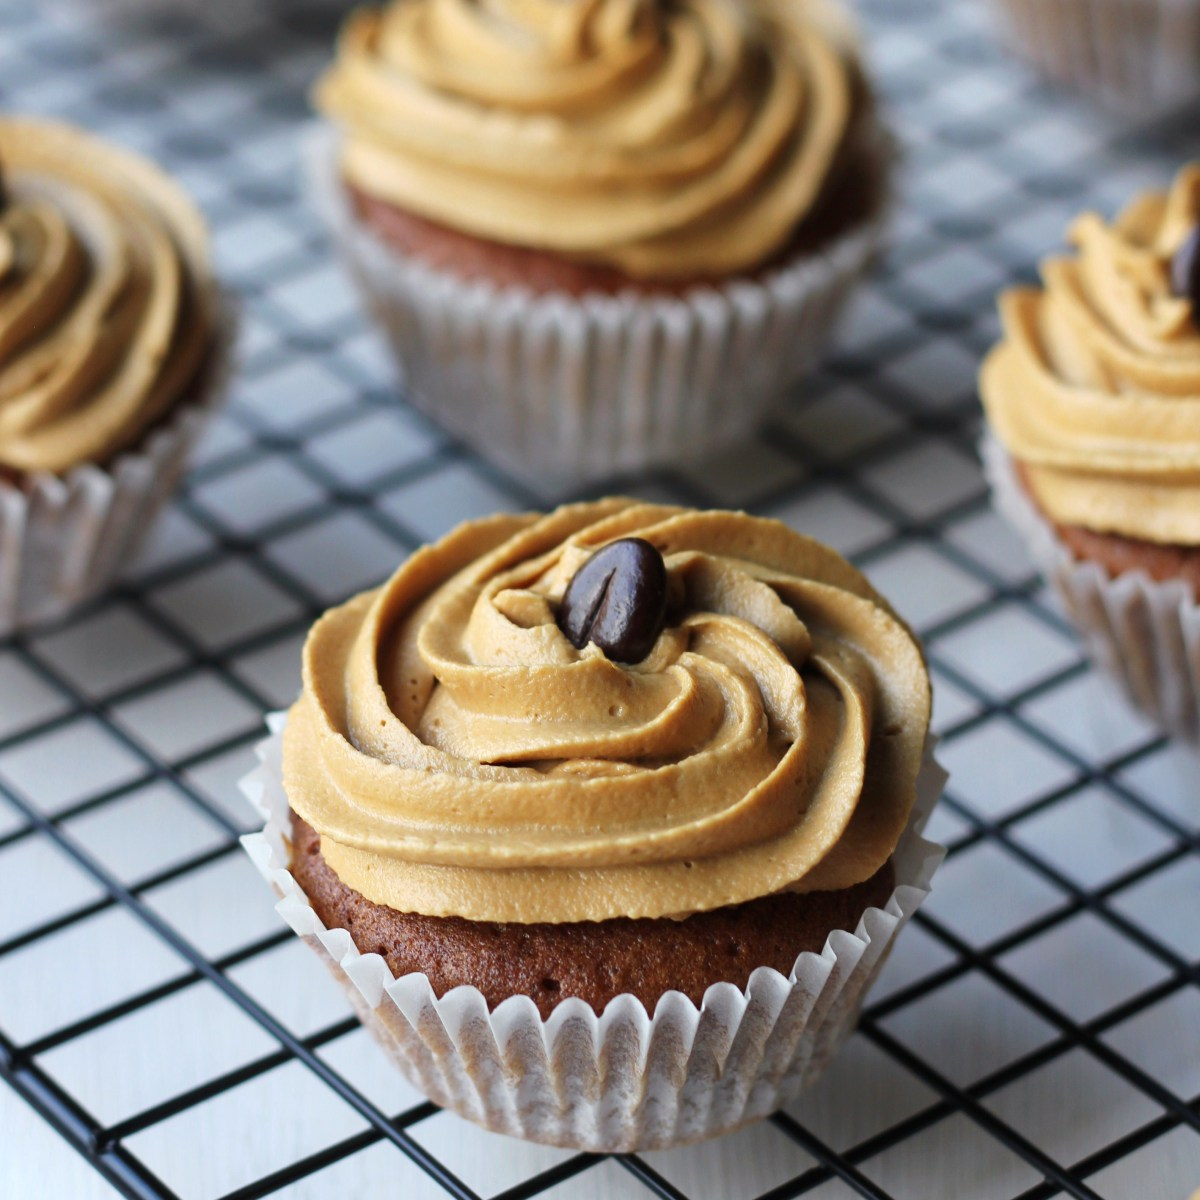 Watkins Recipe - Chocolate Coffee Cupcakes with Coffee Buttercream Frosting